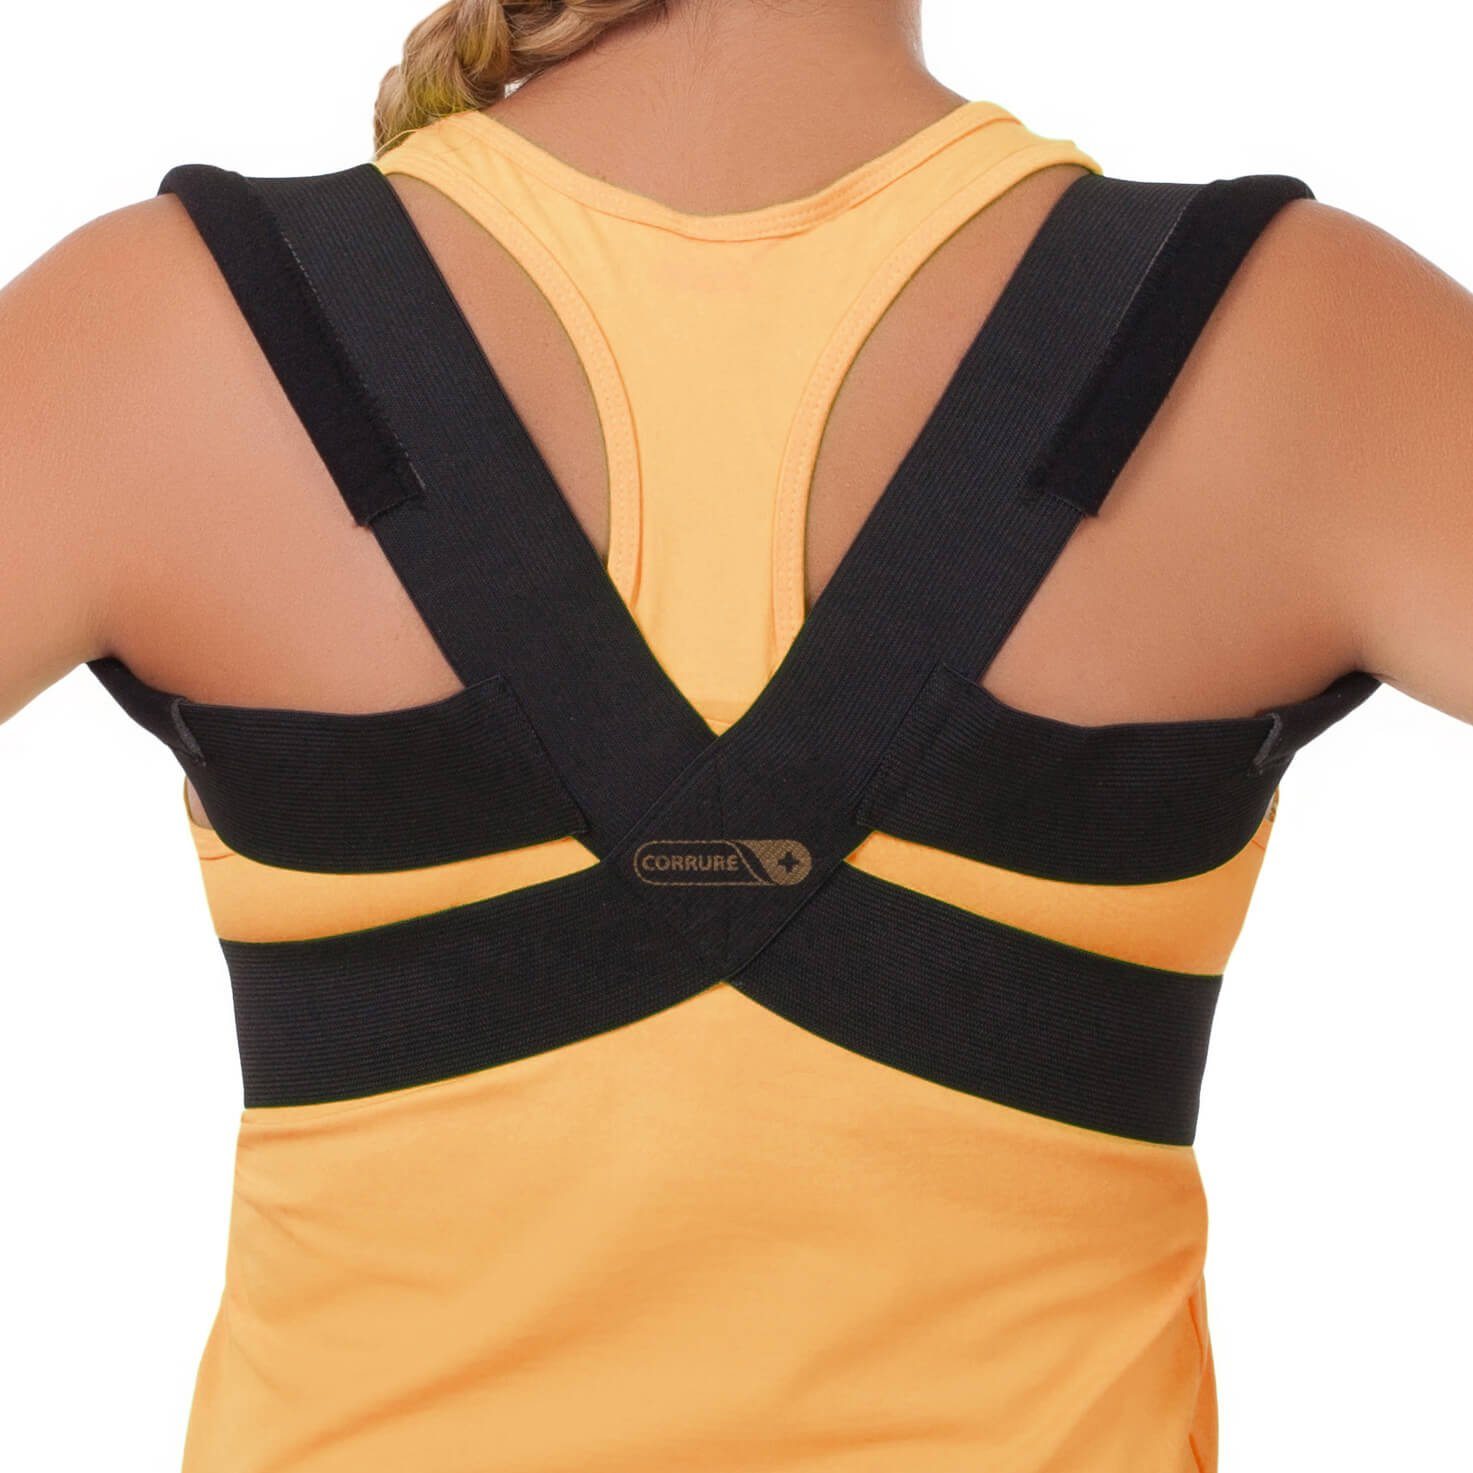 Comfortable Posture Corrector for Women and Men - Discreet Back Support for Women, Designed for Kids and Adults - Posture Brace Corrector and Clavicle Support for Men That Fixes Slouching & Hunching